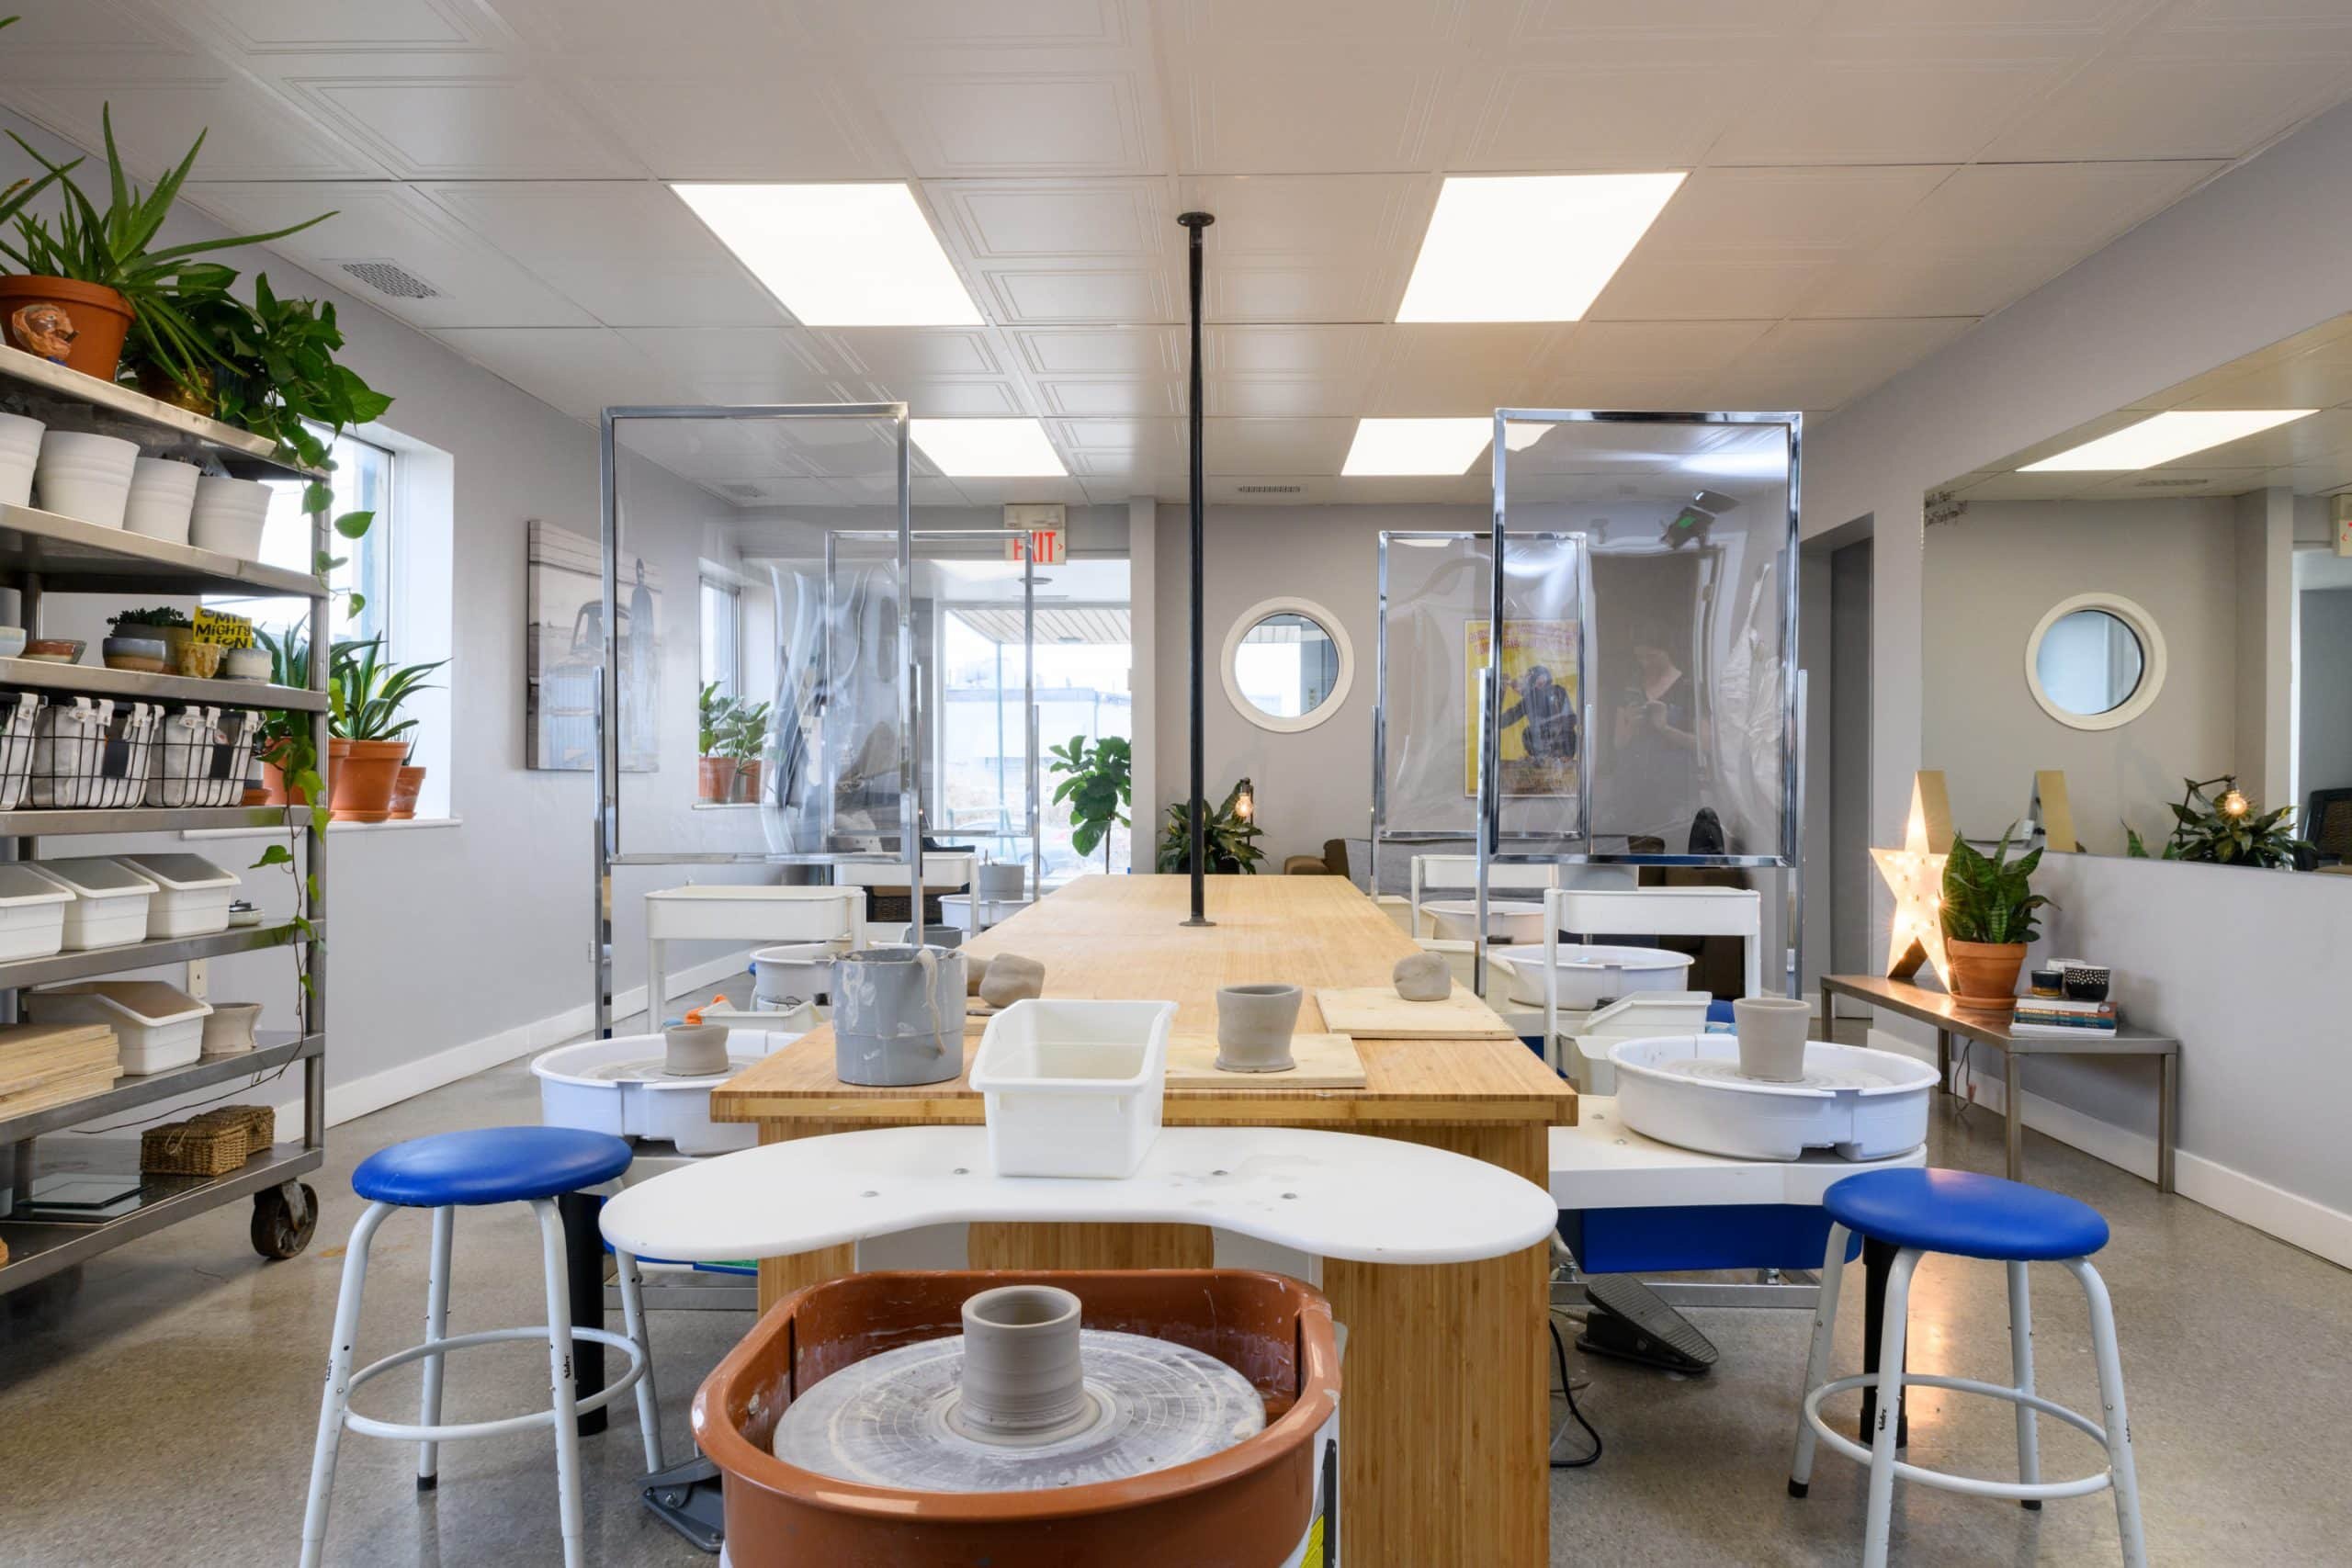 Interior photo for a start-up launch by Mud Urban Potters in Calgary, Alberta.